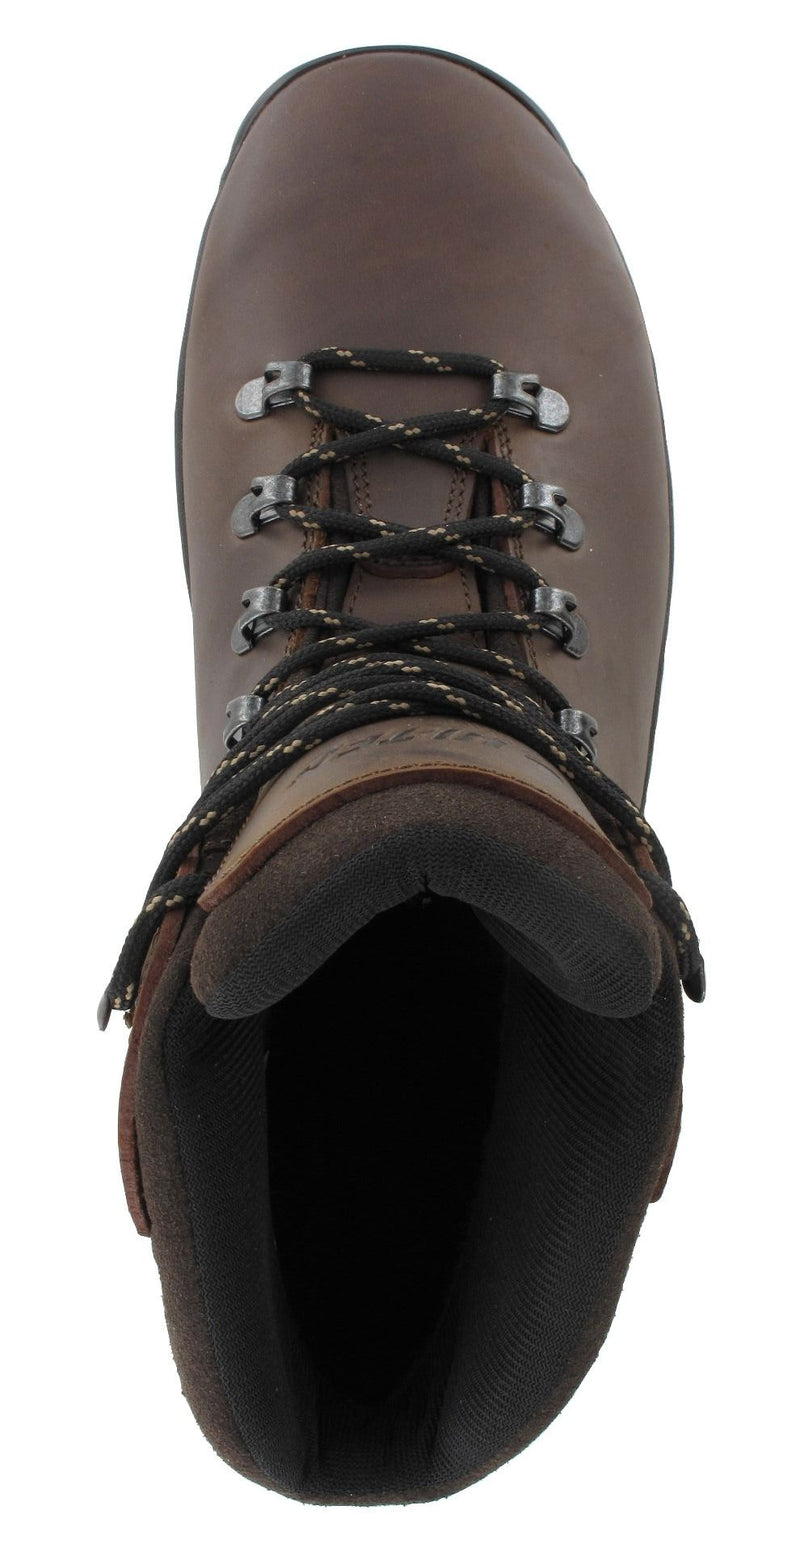 Brown Leather upper Ravine Men's Waterproof Hiking Boots by Hi-Tec